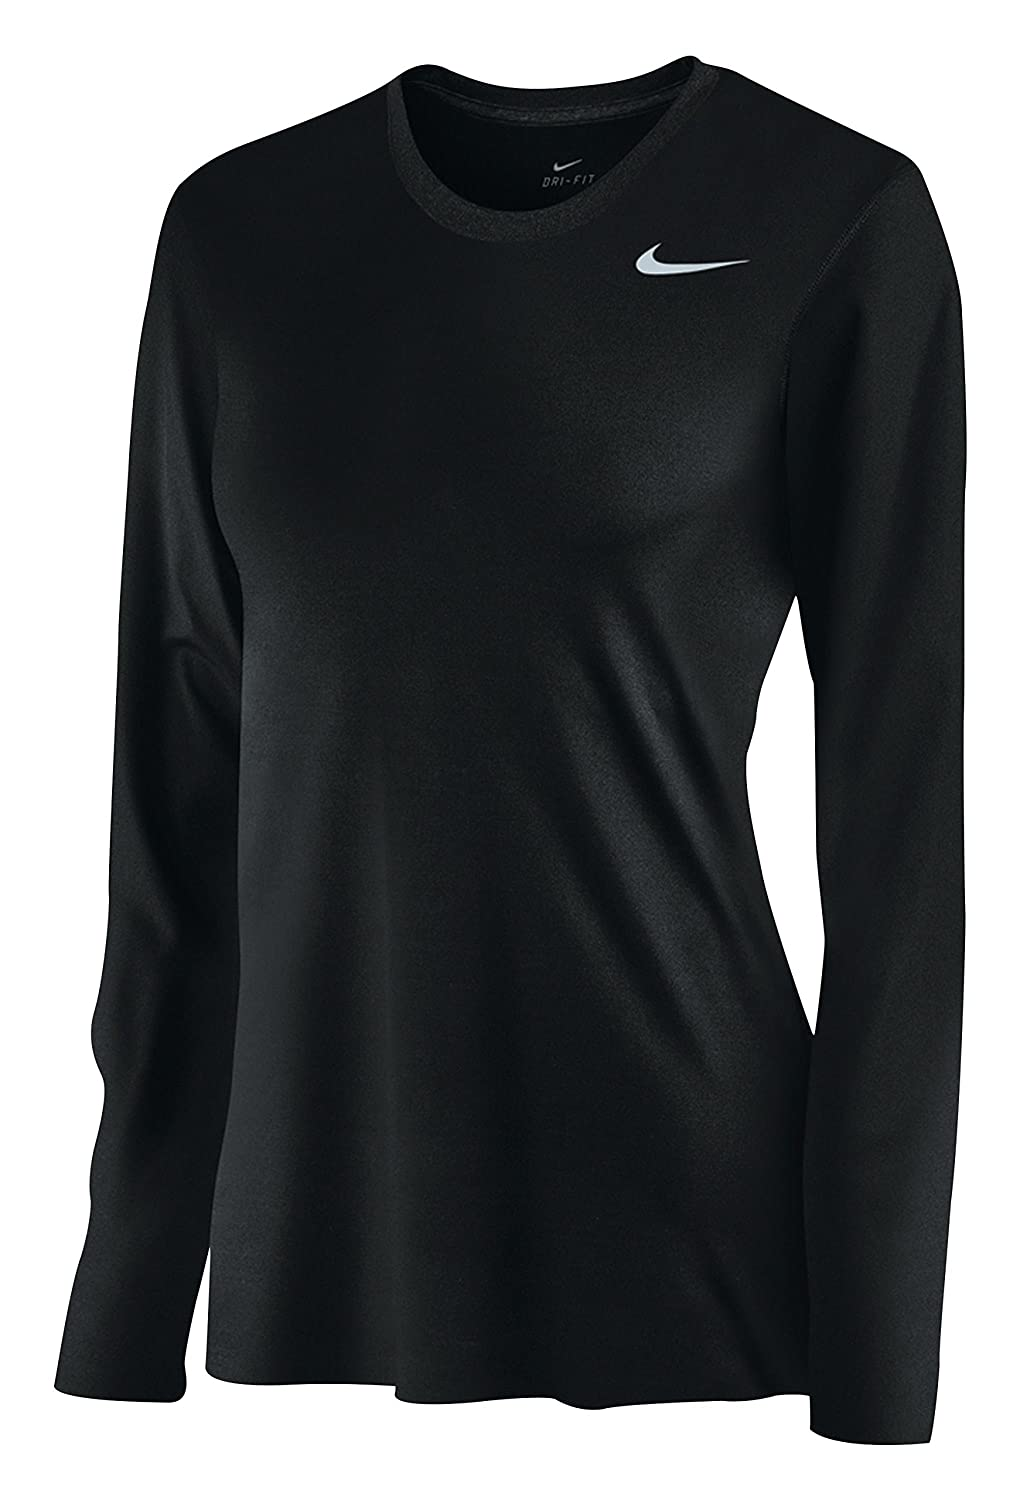 d0c57245 Amazon.com: Nike Womens Dri-Fit Fitness Workout T-Shirt: Clothing